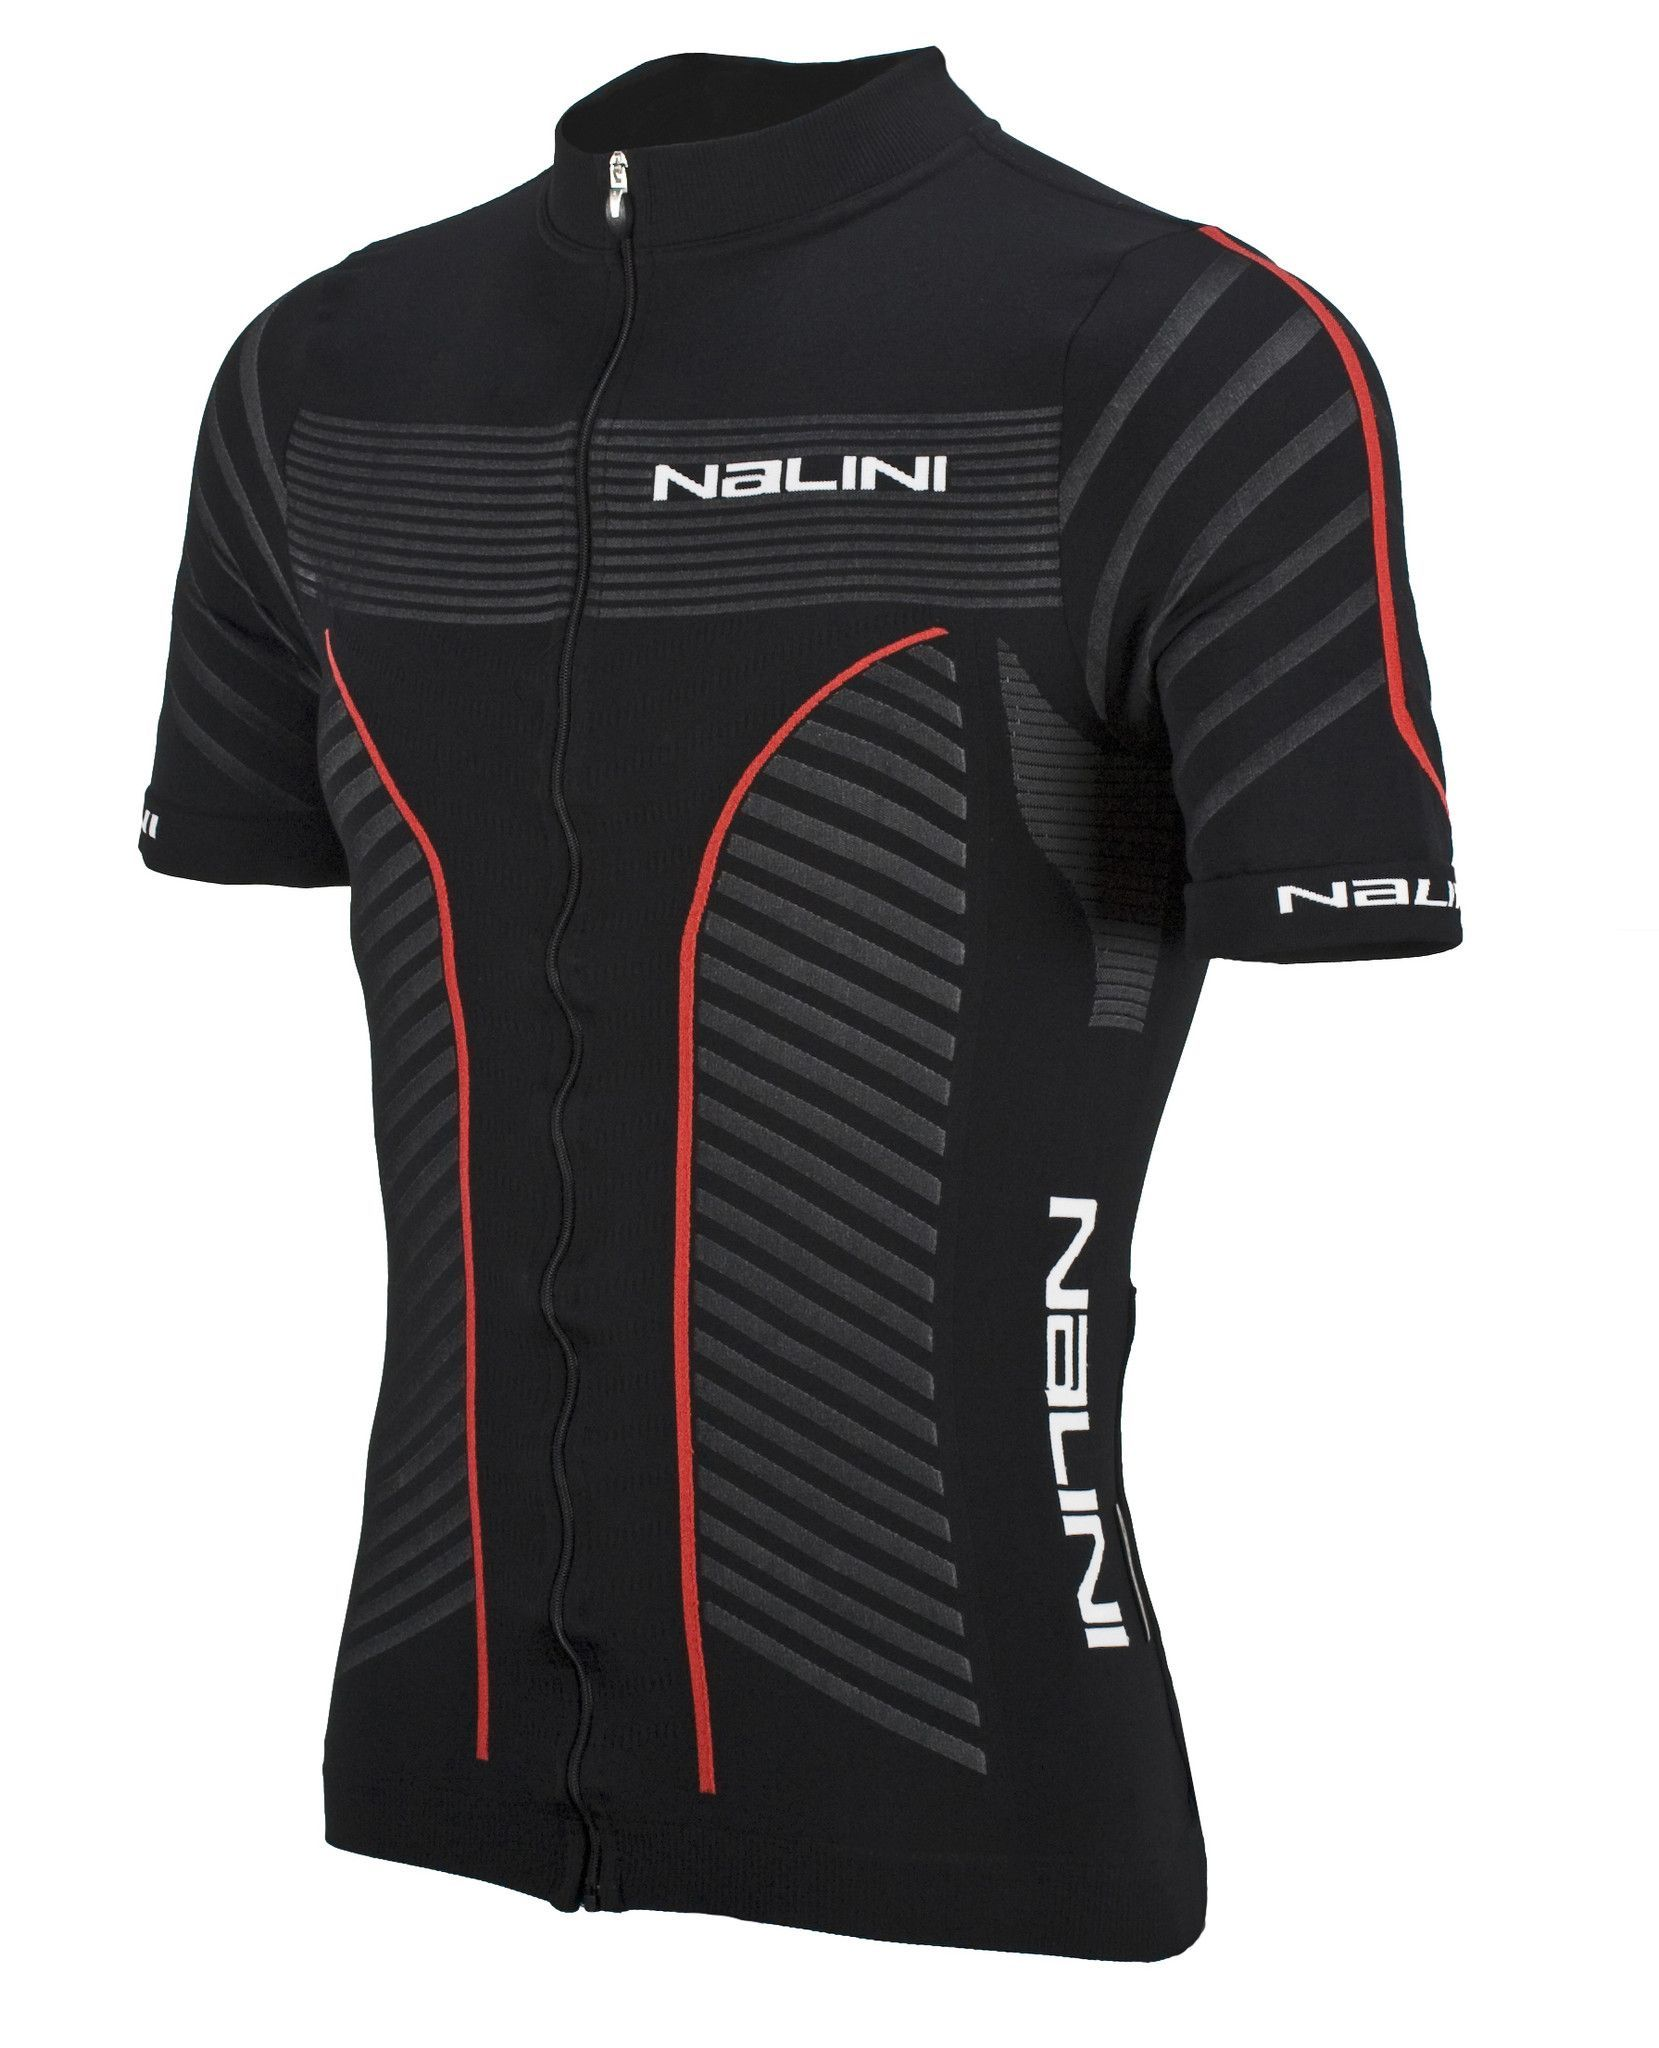 86a813aa1 Nalini Taverino Seamless SS Jersey - 2016 Red Label Collection Nalini  TAVERINO Short Sleeve Jersey is designed for riding in mild weather.